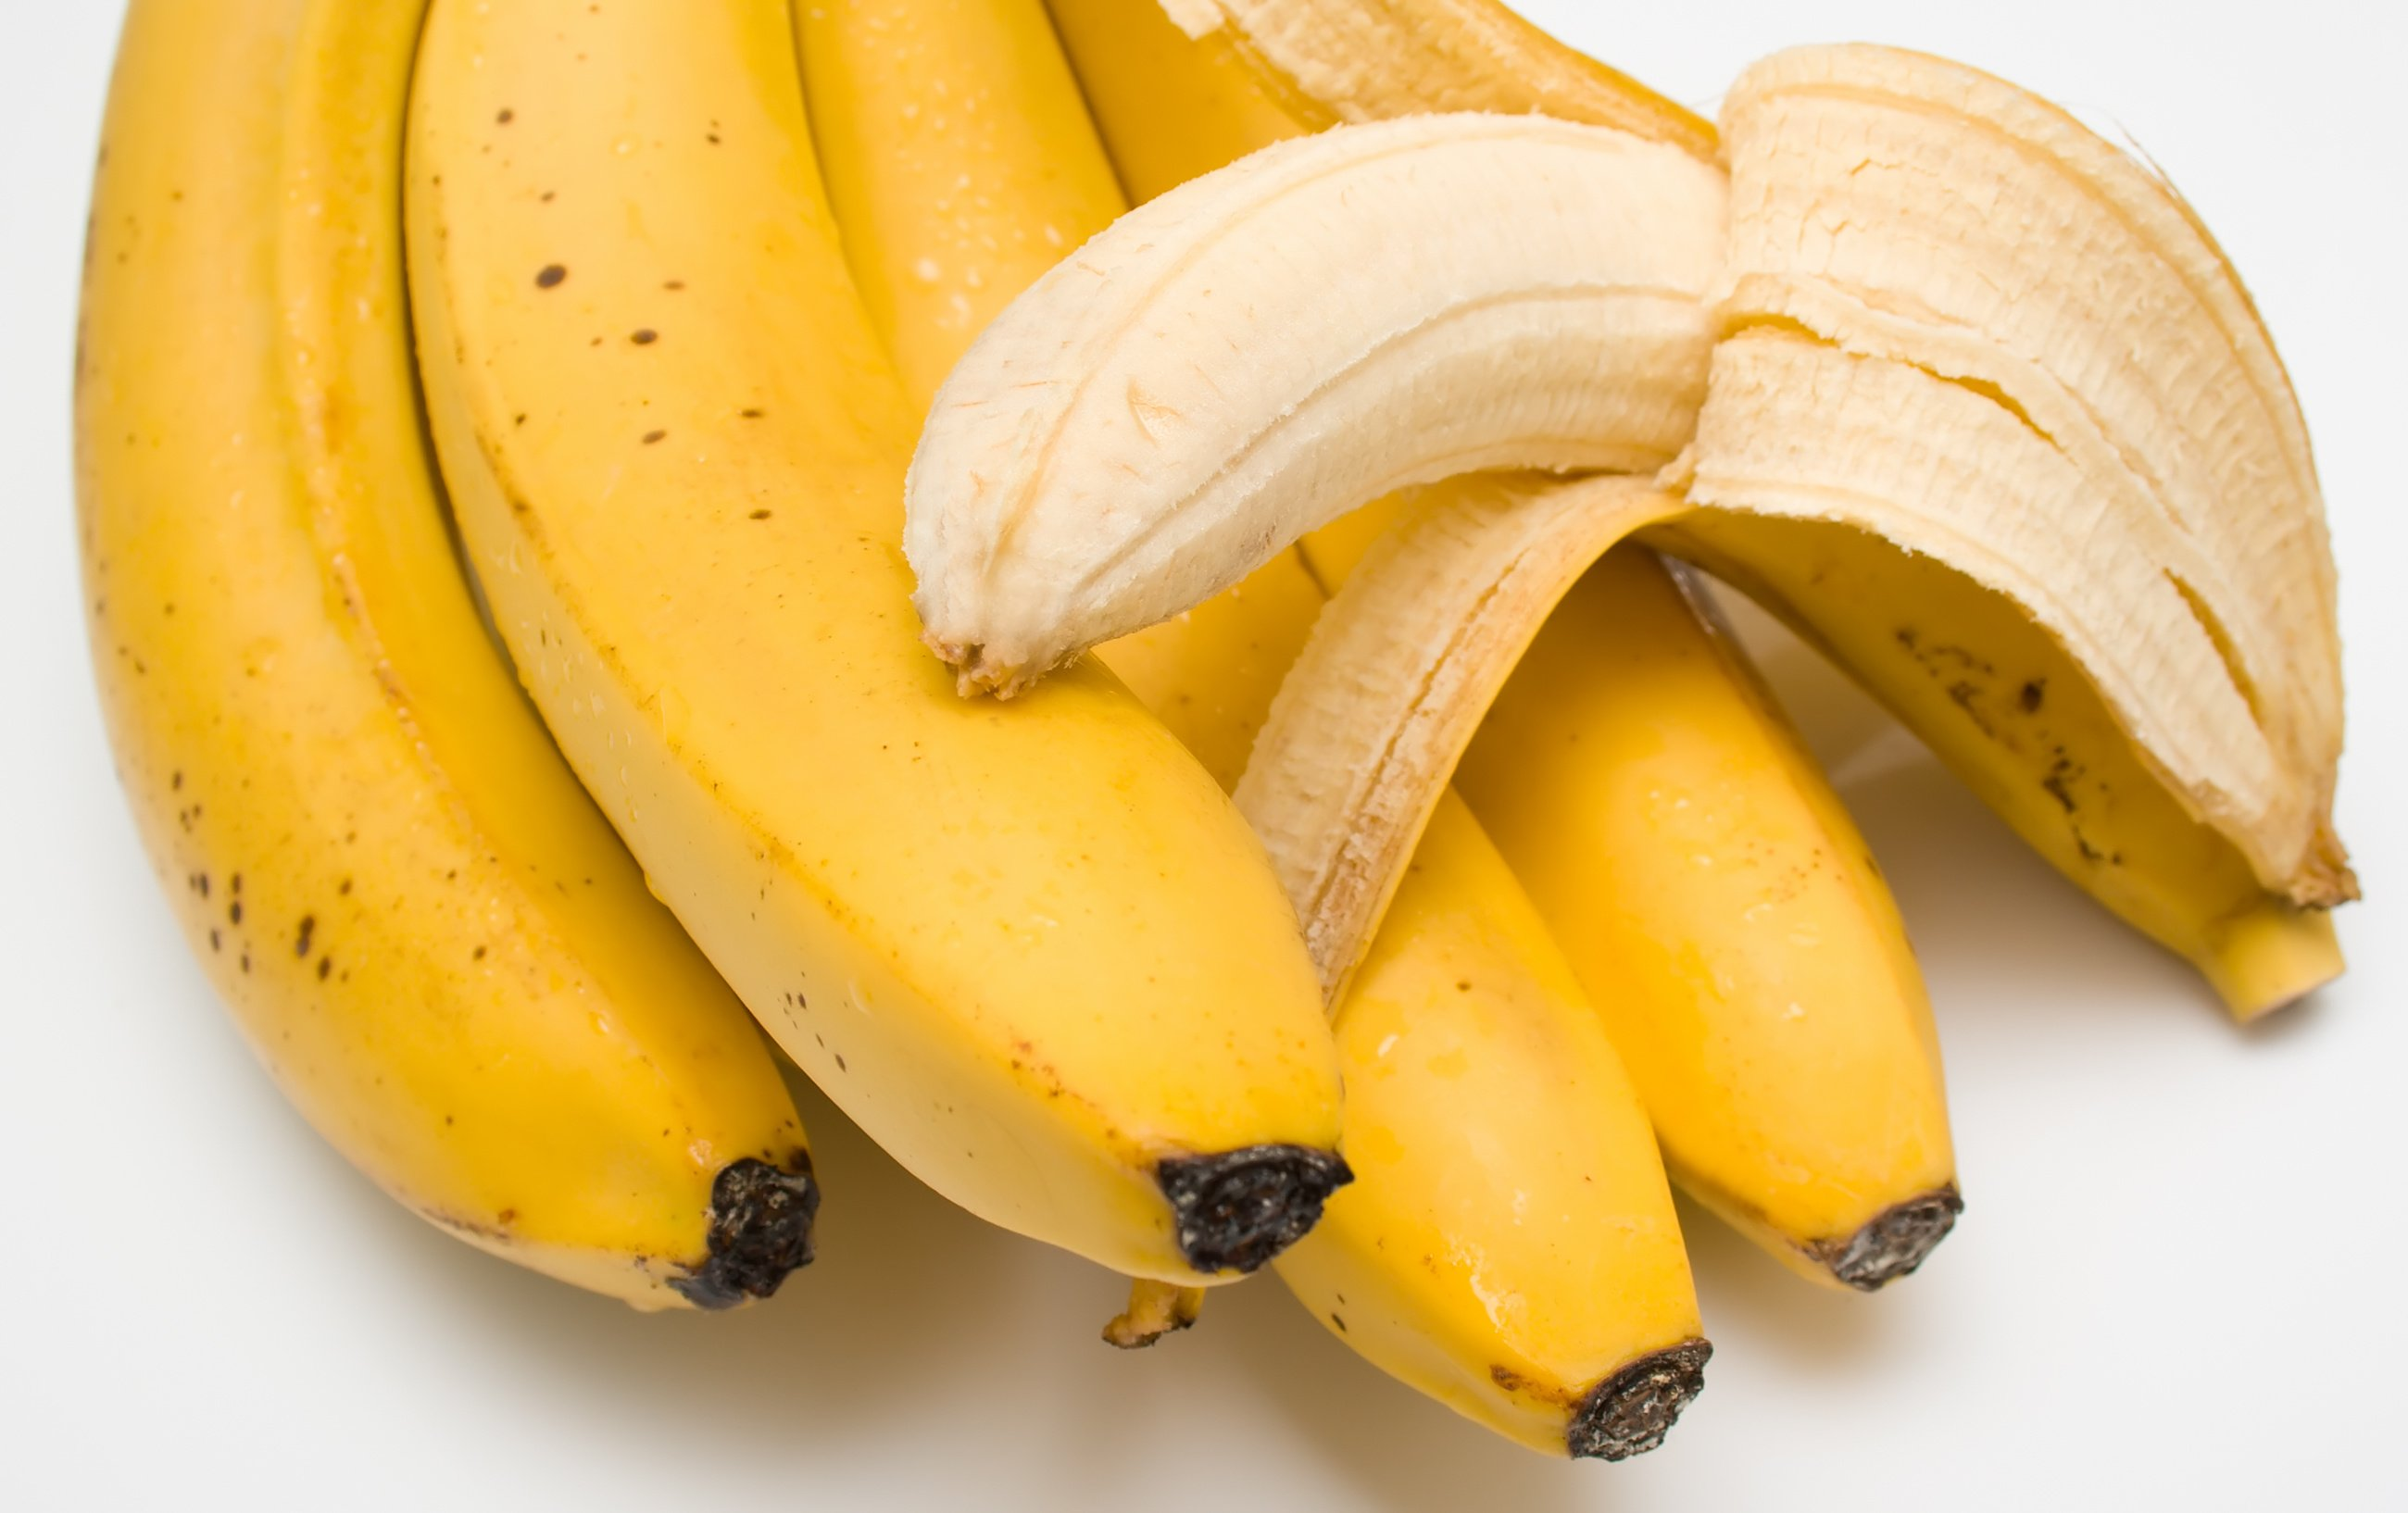 Cluster of ripe bananas. One banana is cleared away from a peel.